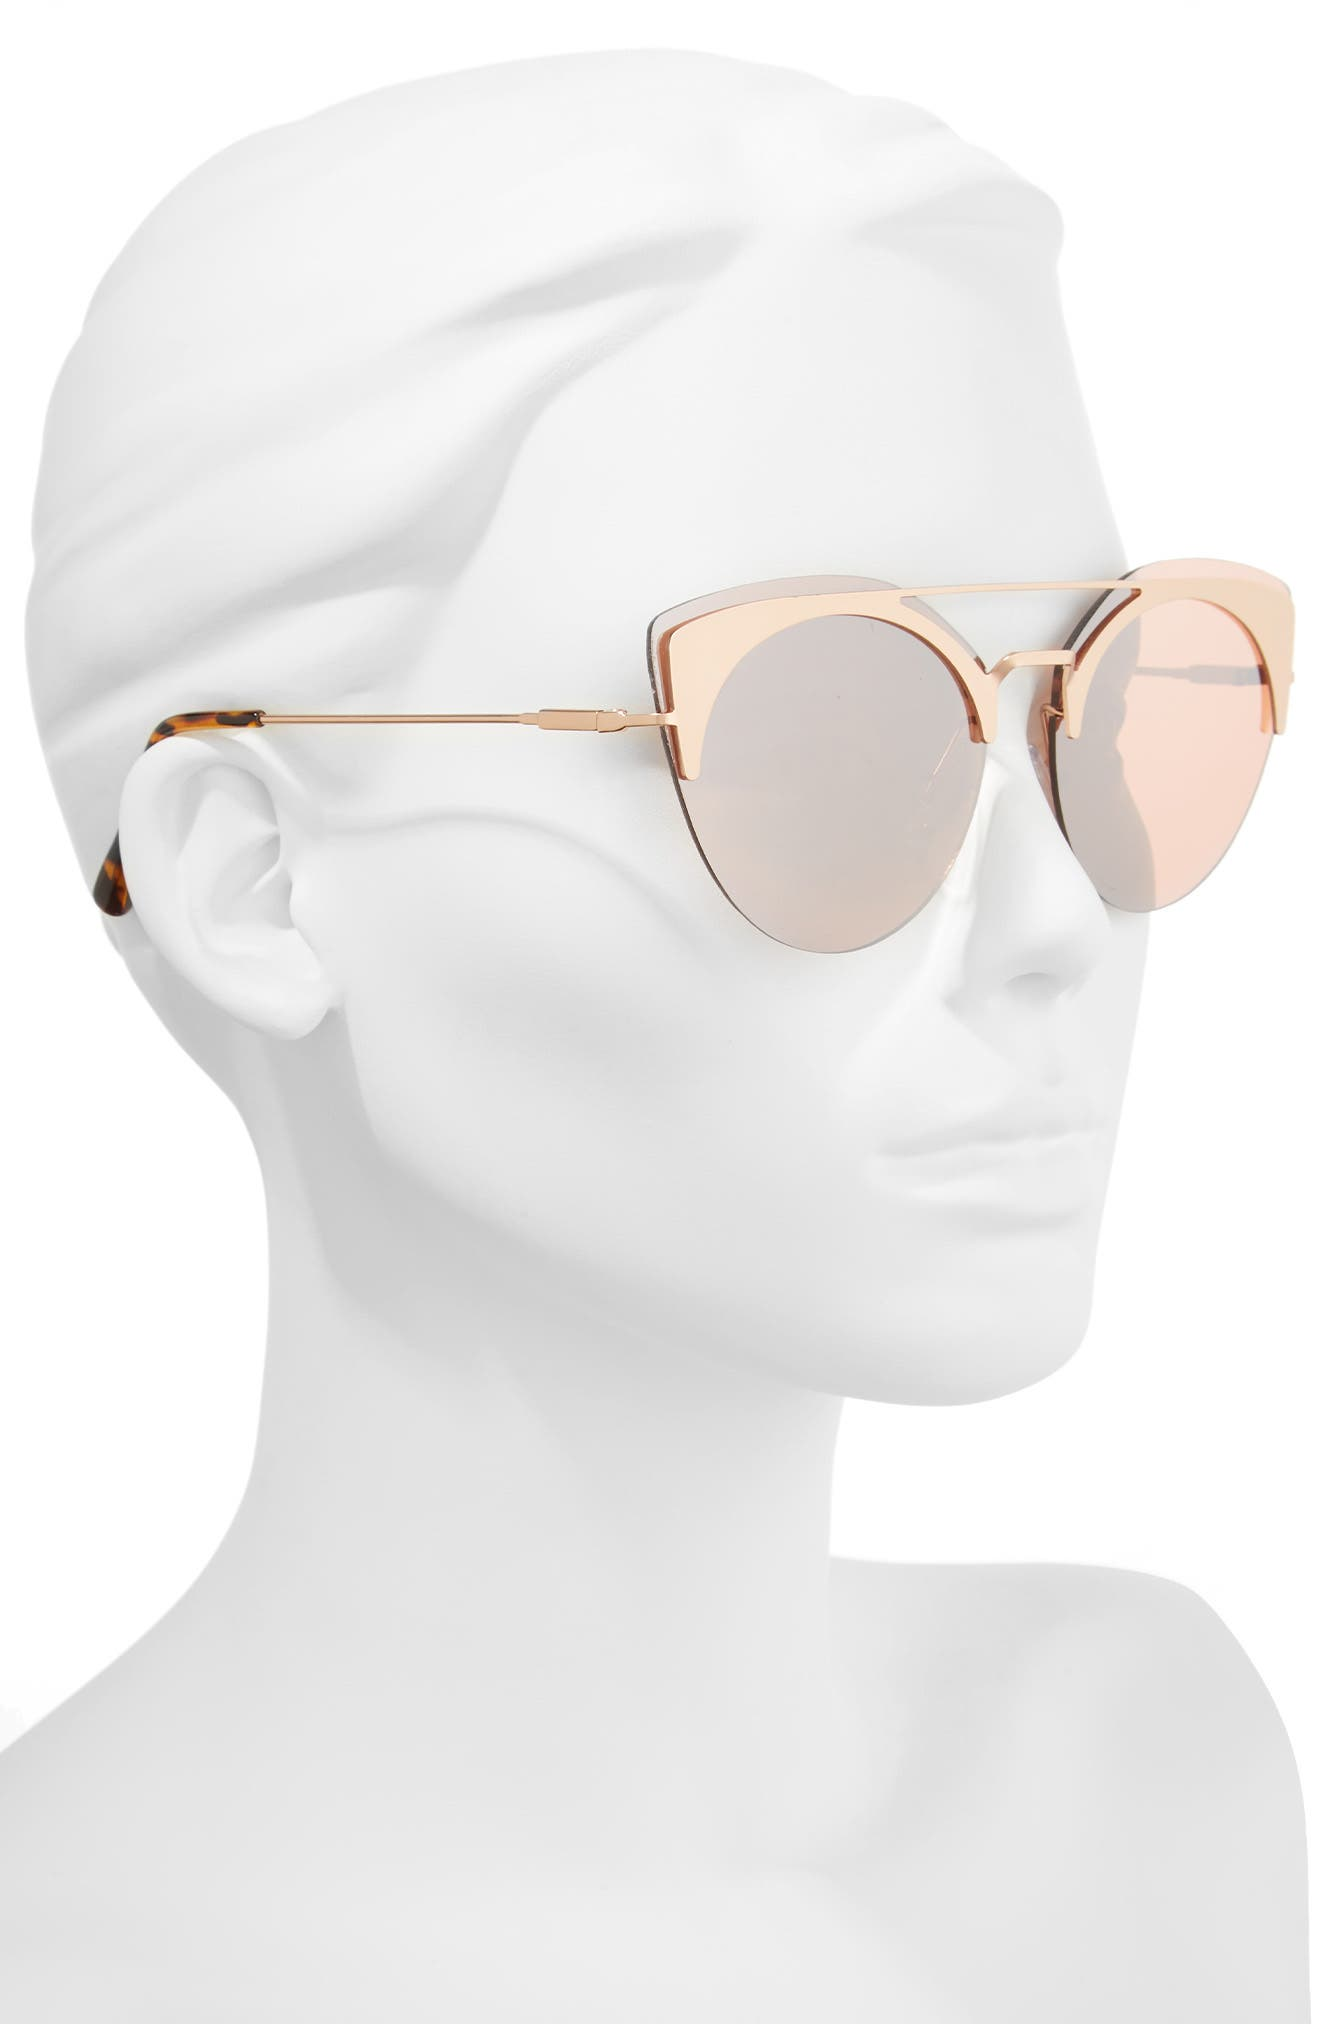 54mm Round Sunglasses,                             Alternate thumbnail 2, color,                             Gold/ Brown